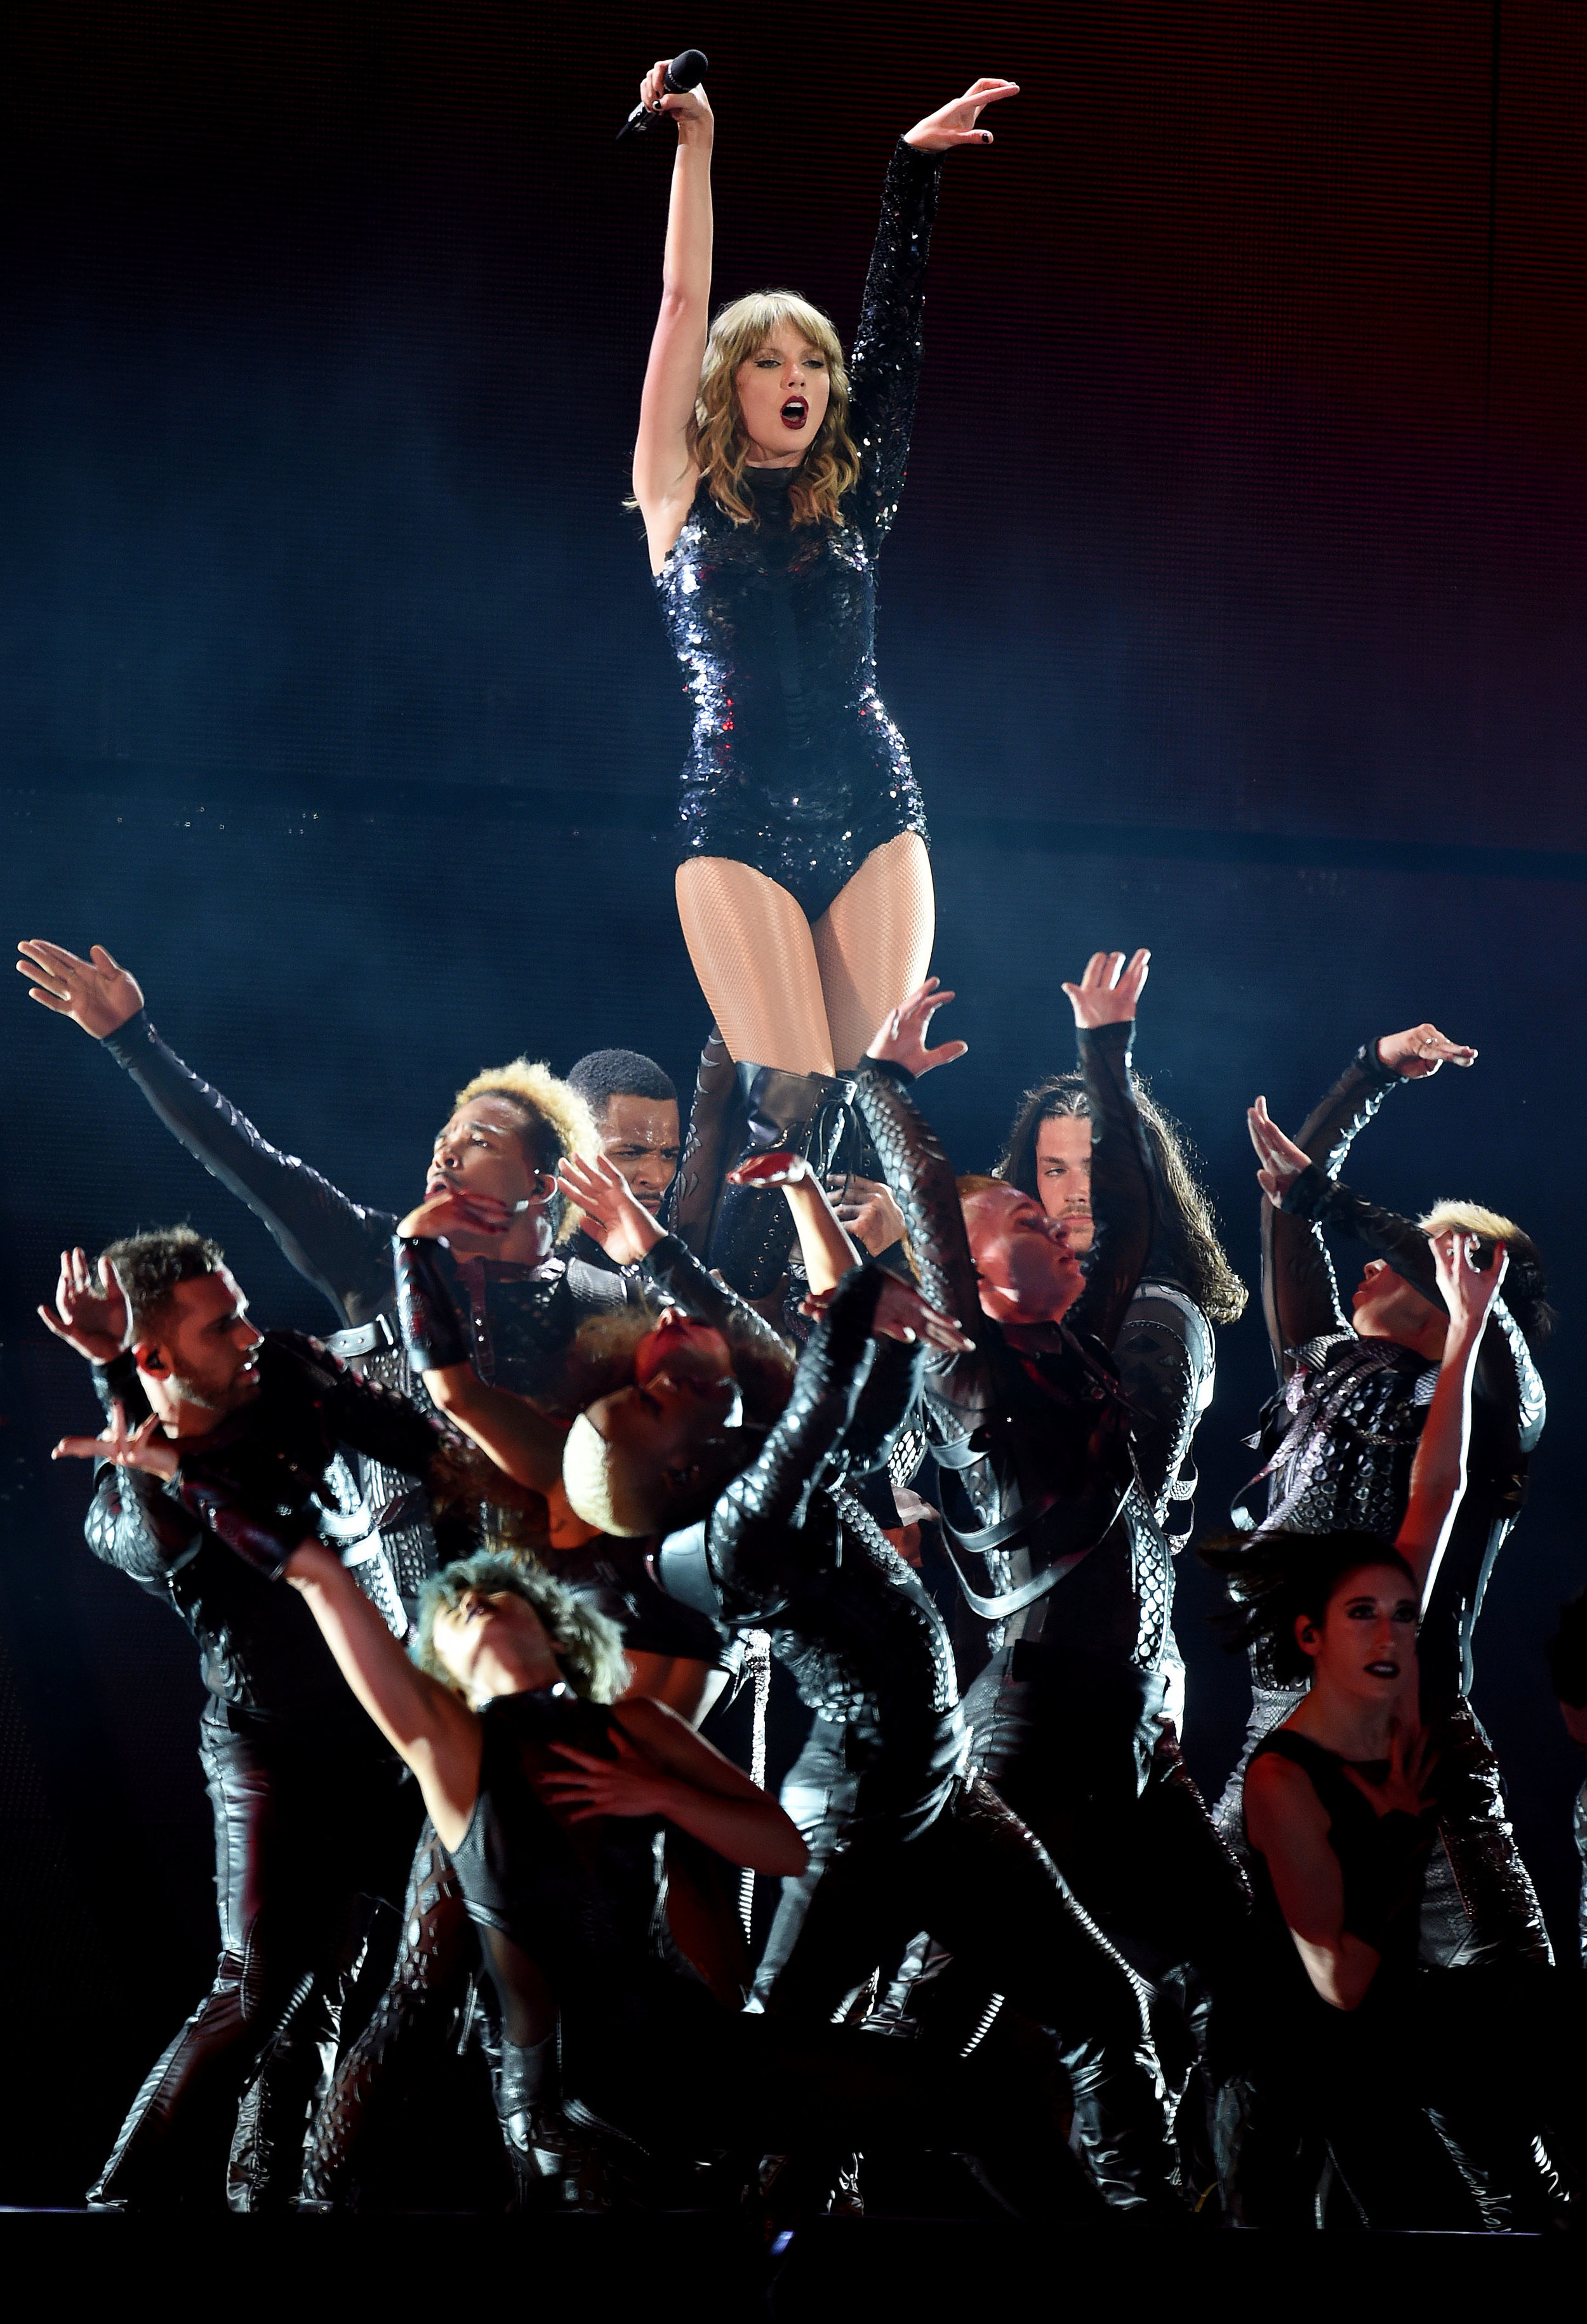 Taylor Swift performs before approximately 60,000 fans during her Reputation Stadium Tour Friday night May 18, 2018 at the Rose Bowl in Pasadena, Calif. It was the first of two Swift shows at the stadium. Camila Cabelo and Charli XCX also performed.